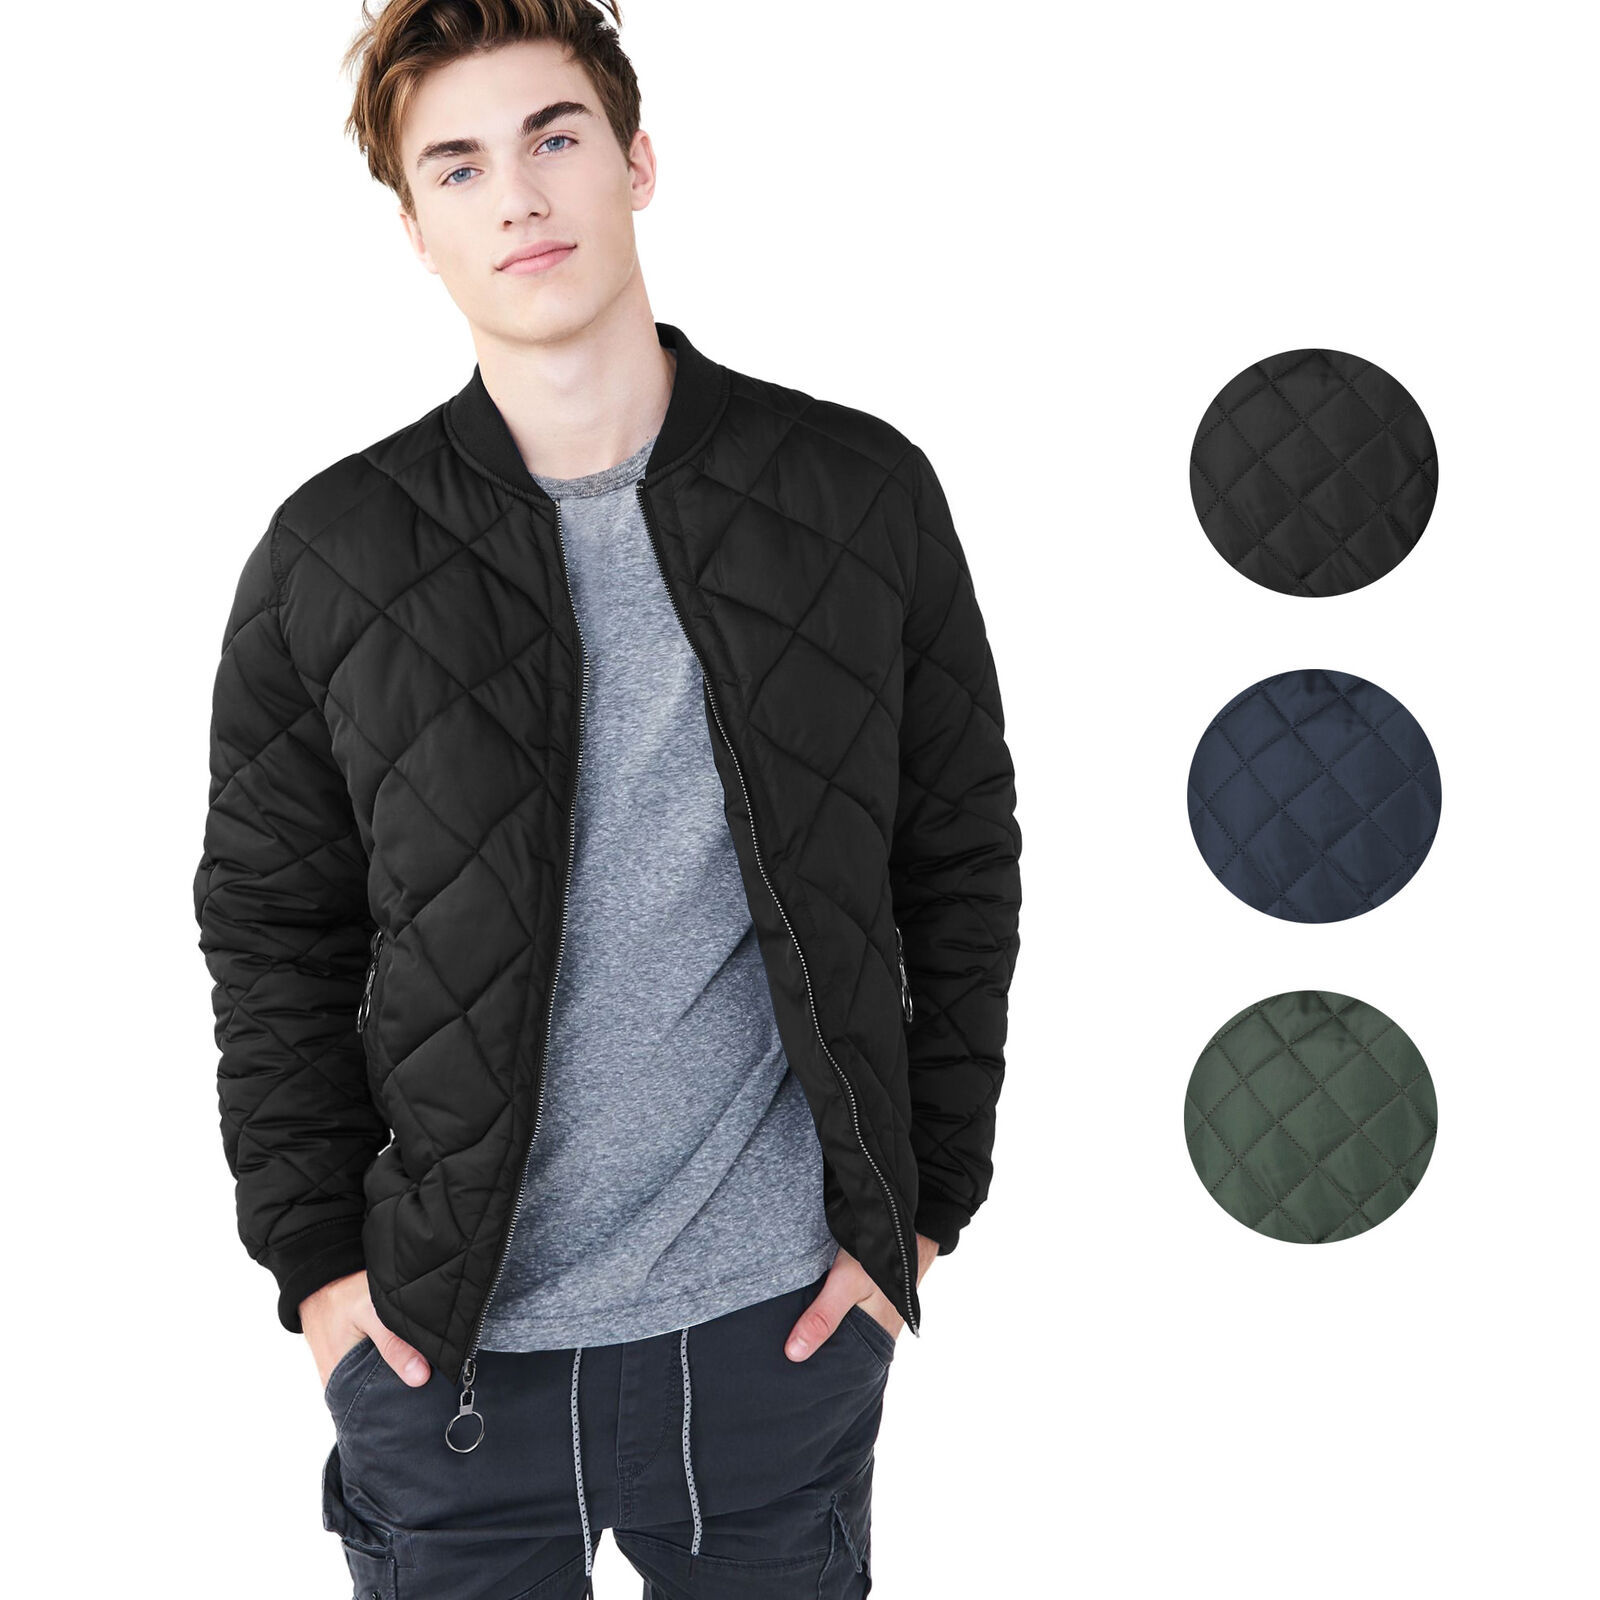 Men's Lightweight Ring Zipper Quilted Water Resistant Slim Bomber Jacket JASON